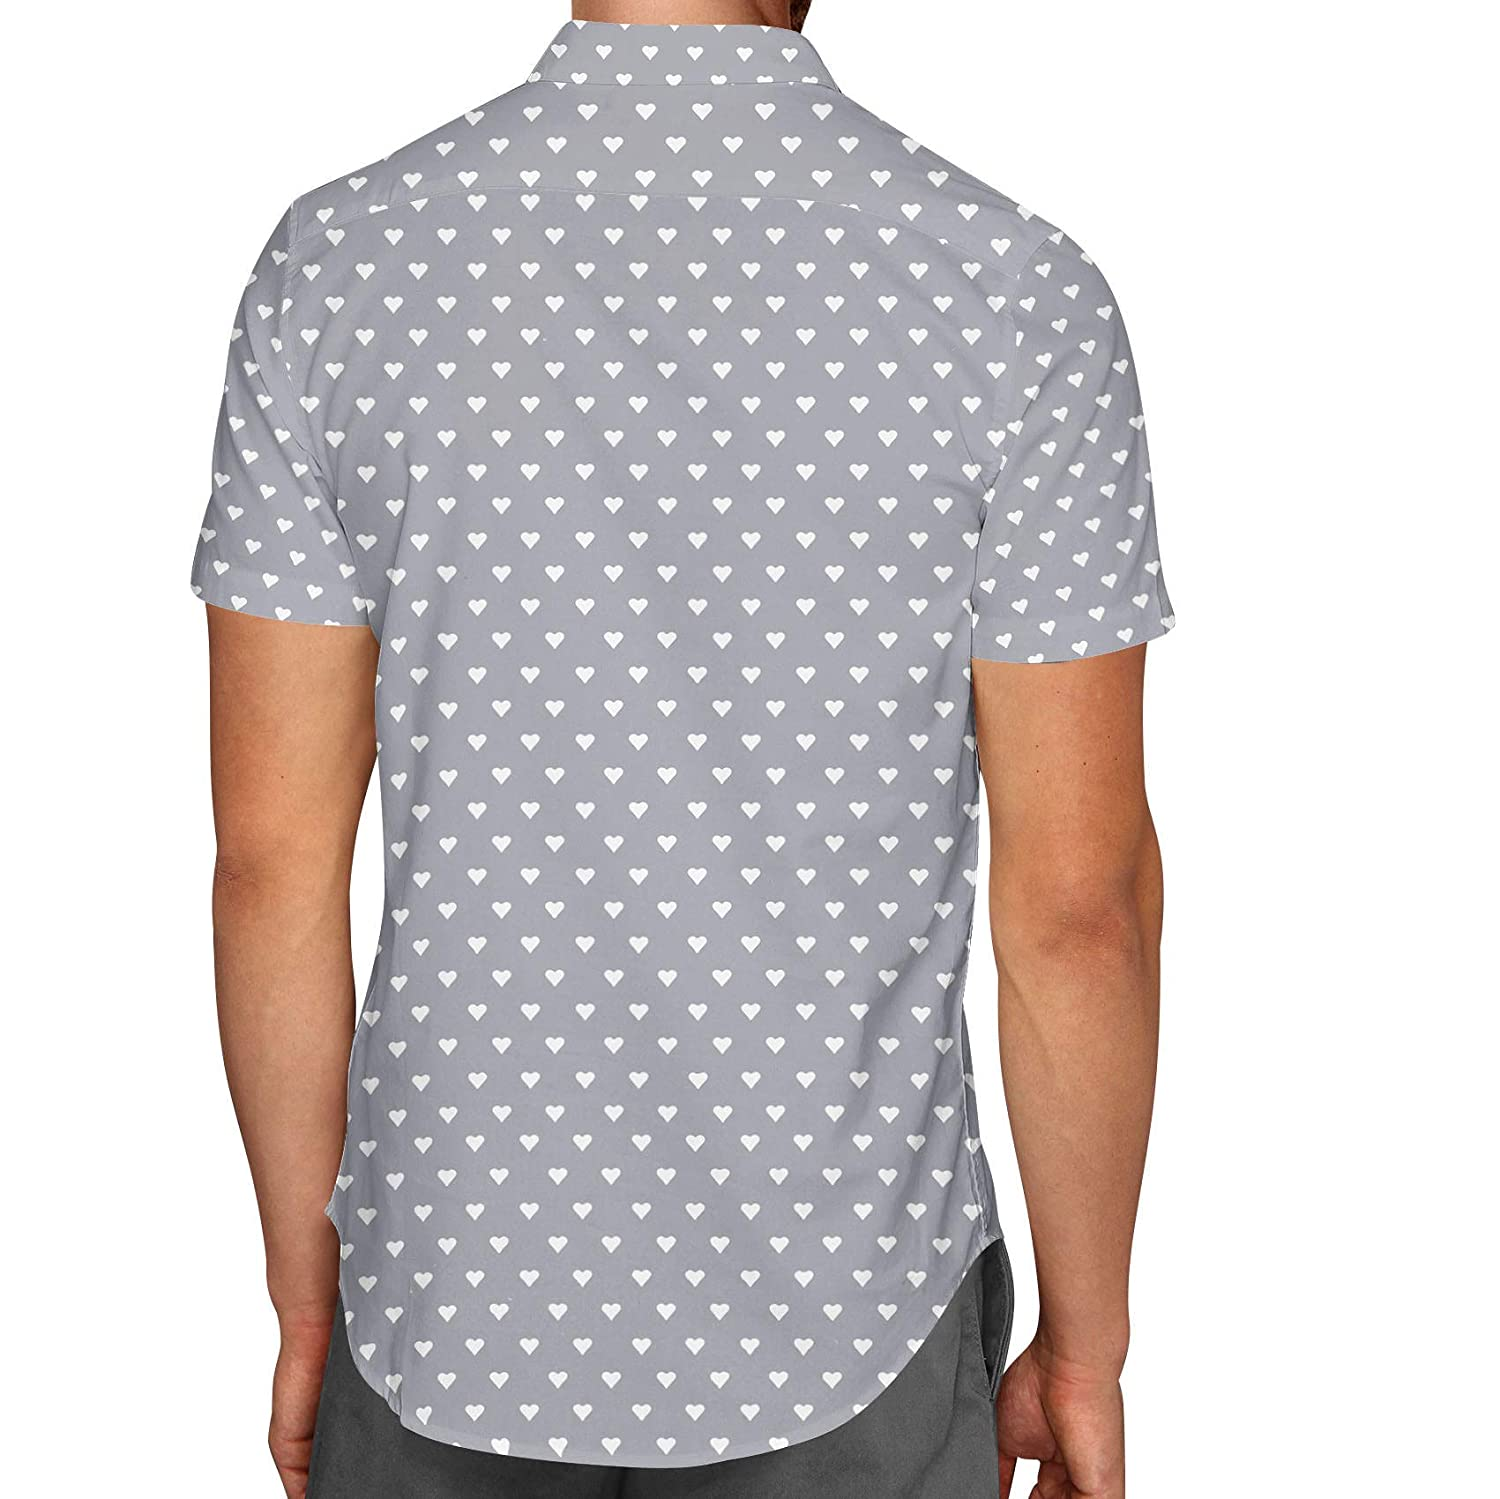 Mini Hearts on Grey Mens Button Down Short Sleeve Shirt